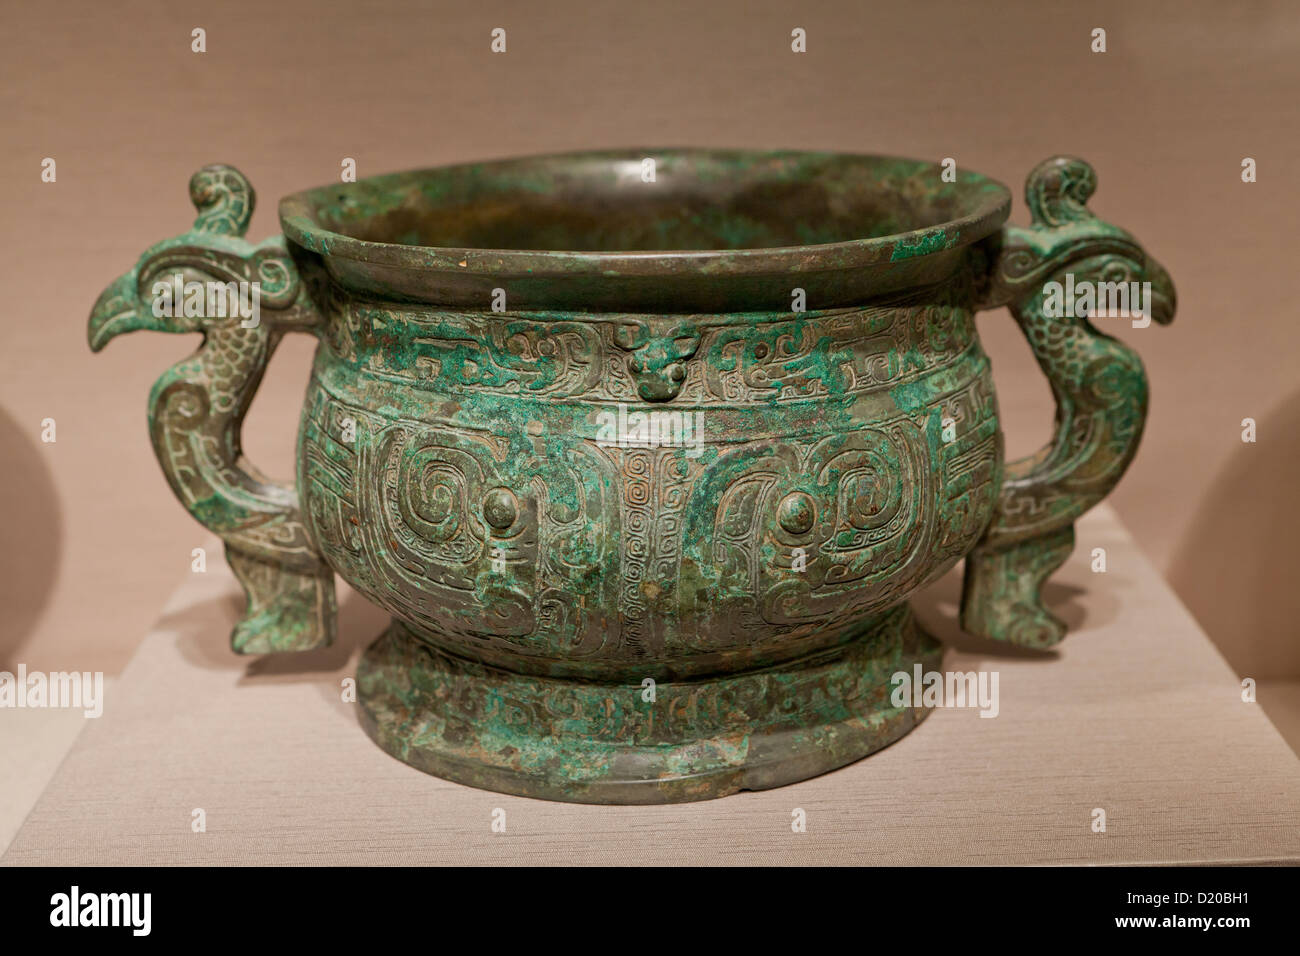 Zhou Dynasty Stock Photos & Zhou Dynasty Stock Images - Alamy